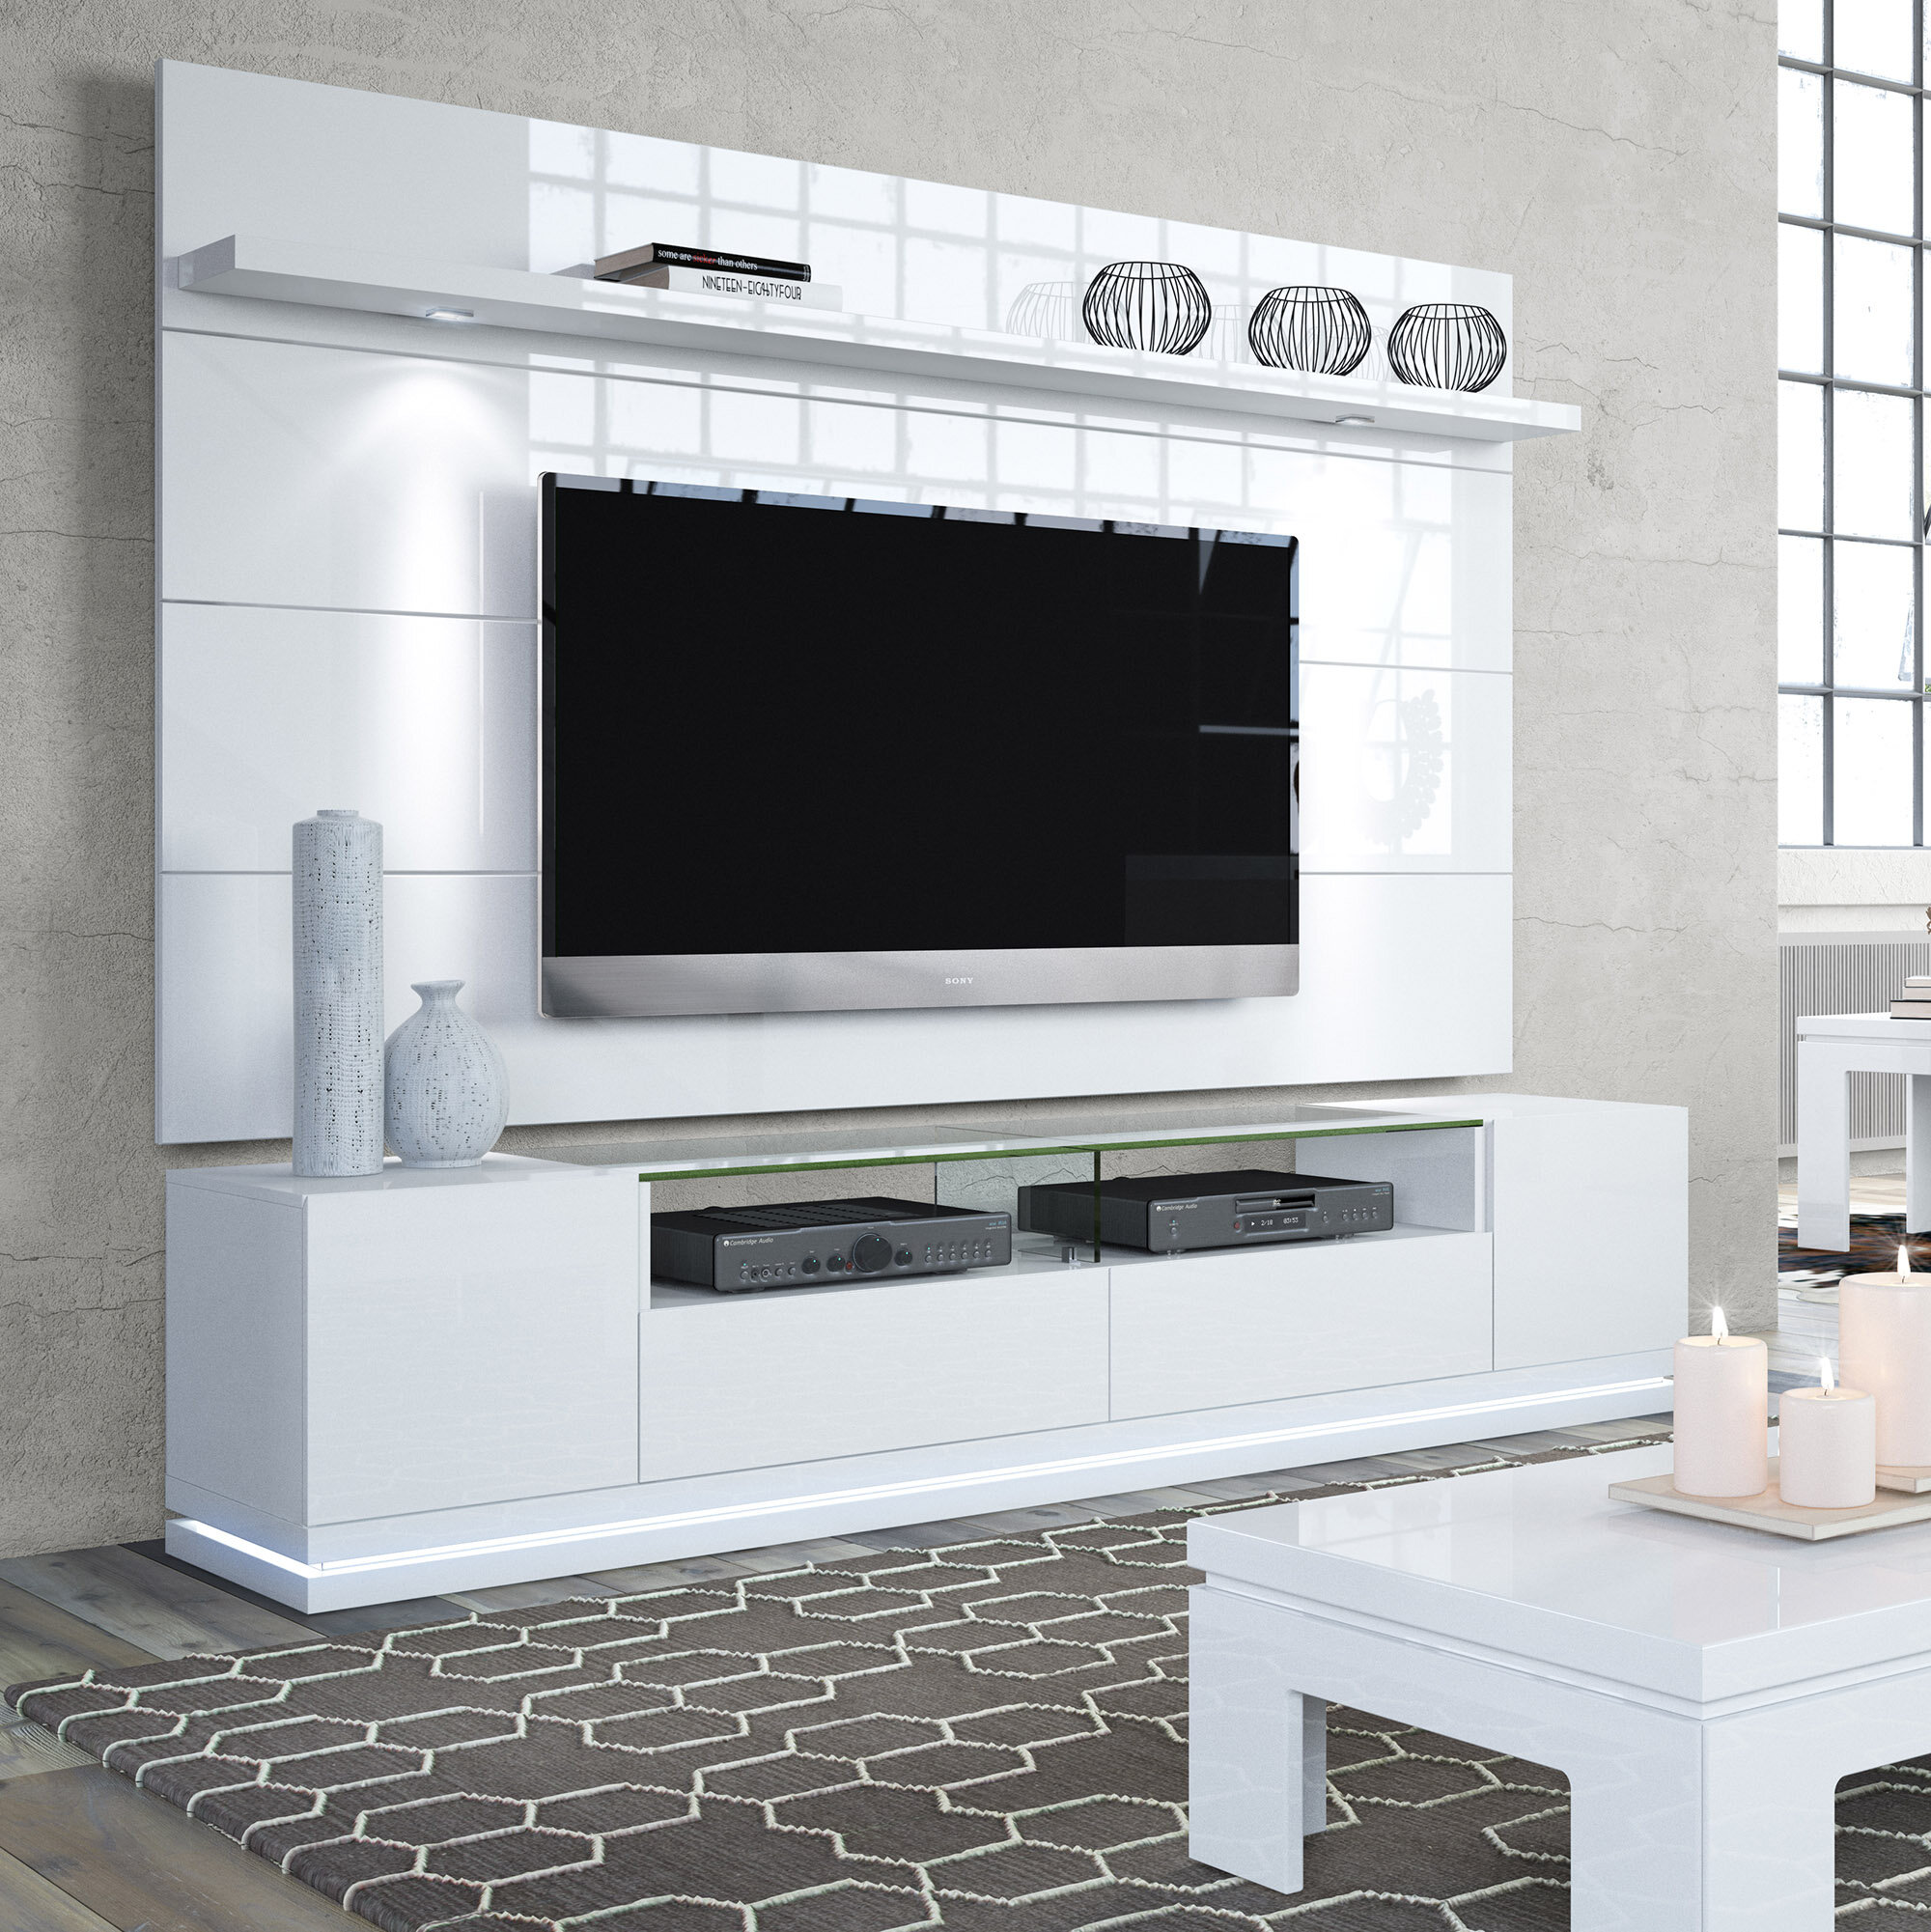 Tremendous Danforth Floating Wall Tv Stand For Tvs Up To 78 Download Free Architecture Designs Scobabritishbridgeorg